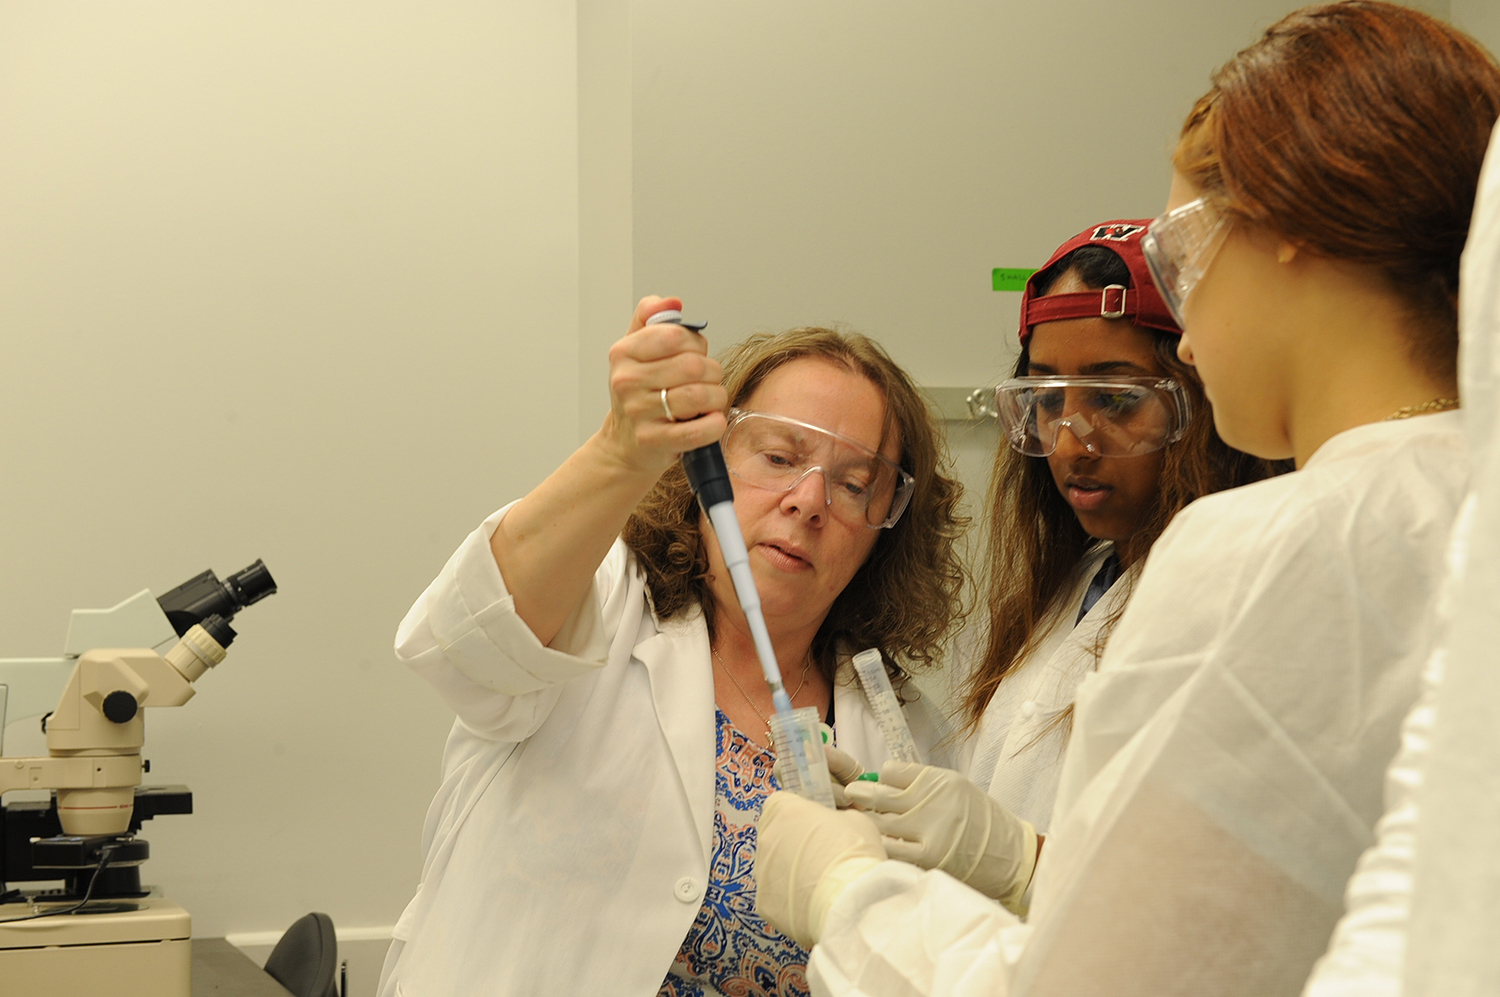 Summer Session students perform an experiment in Research Associate Rosemarie Doris's Biology I lab.